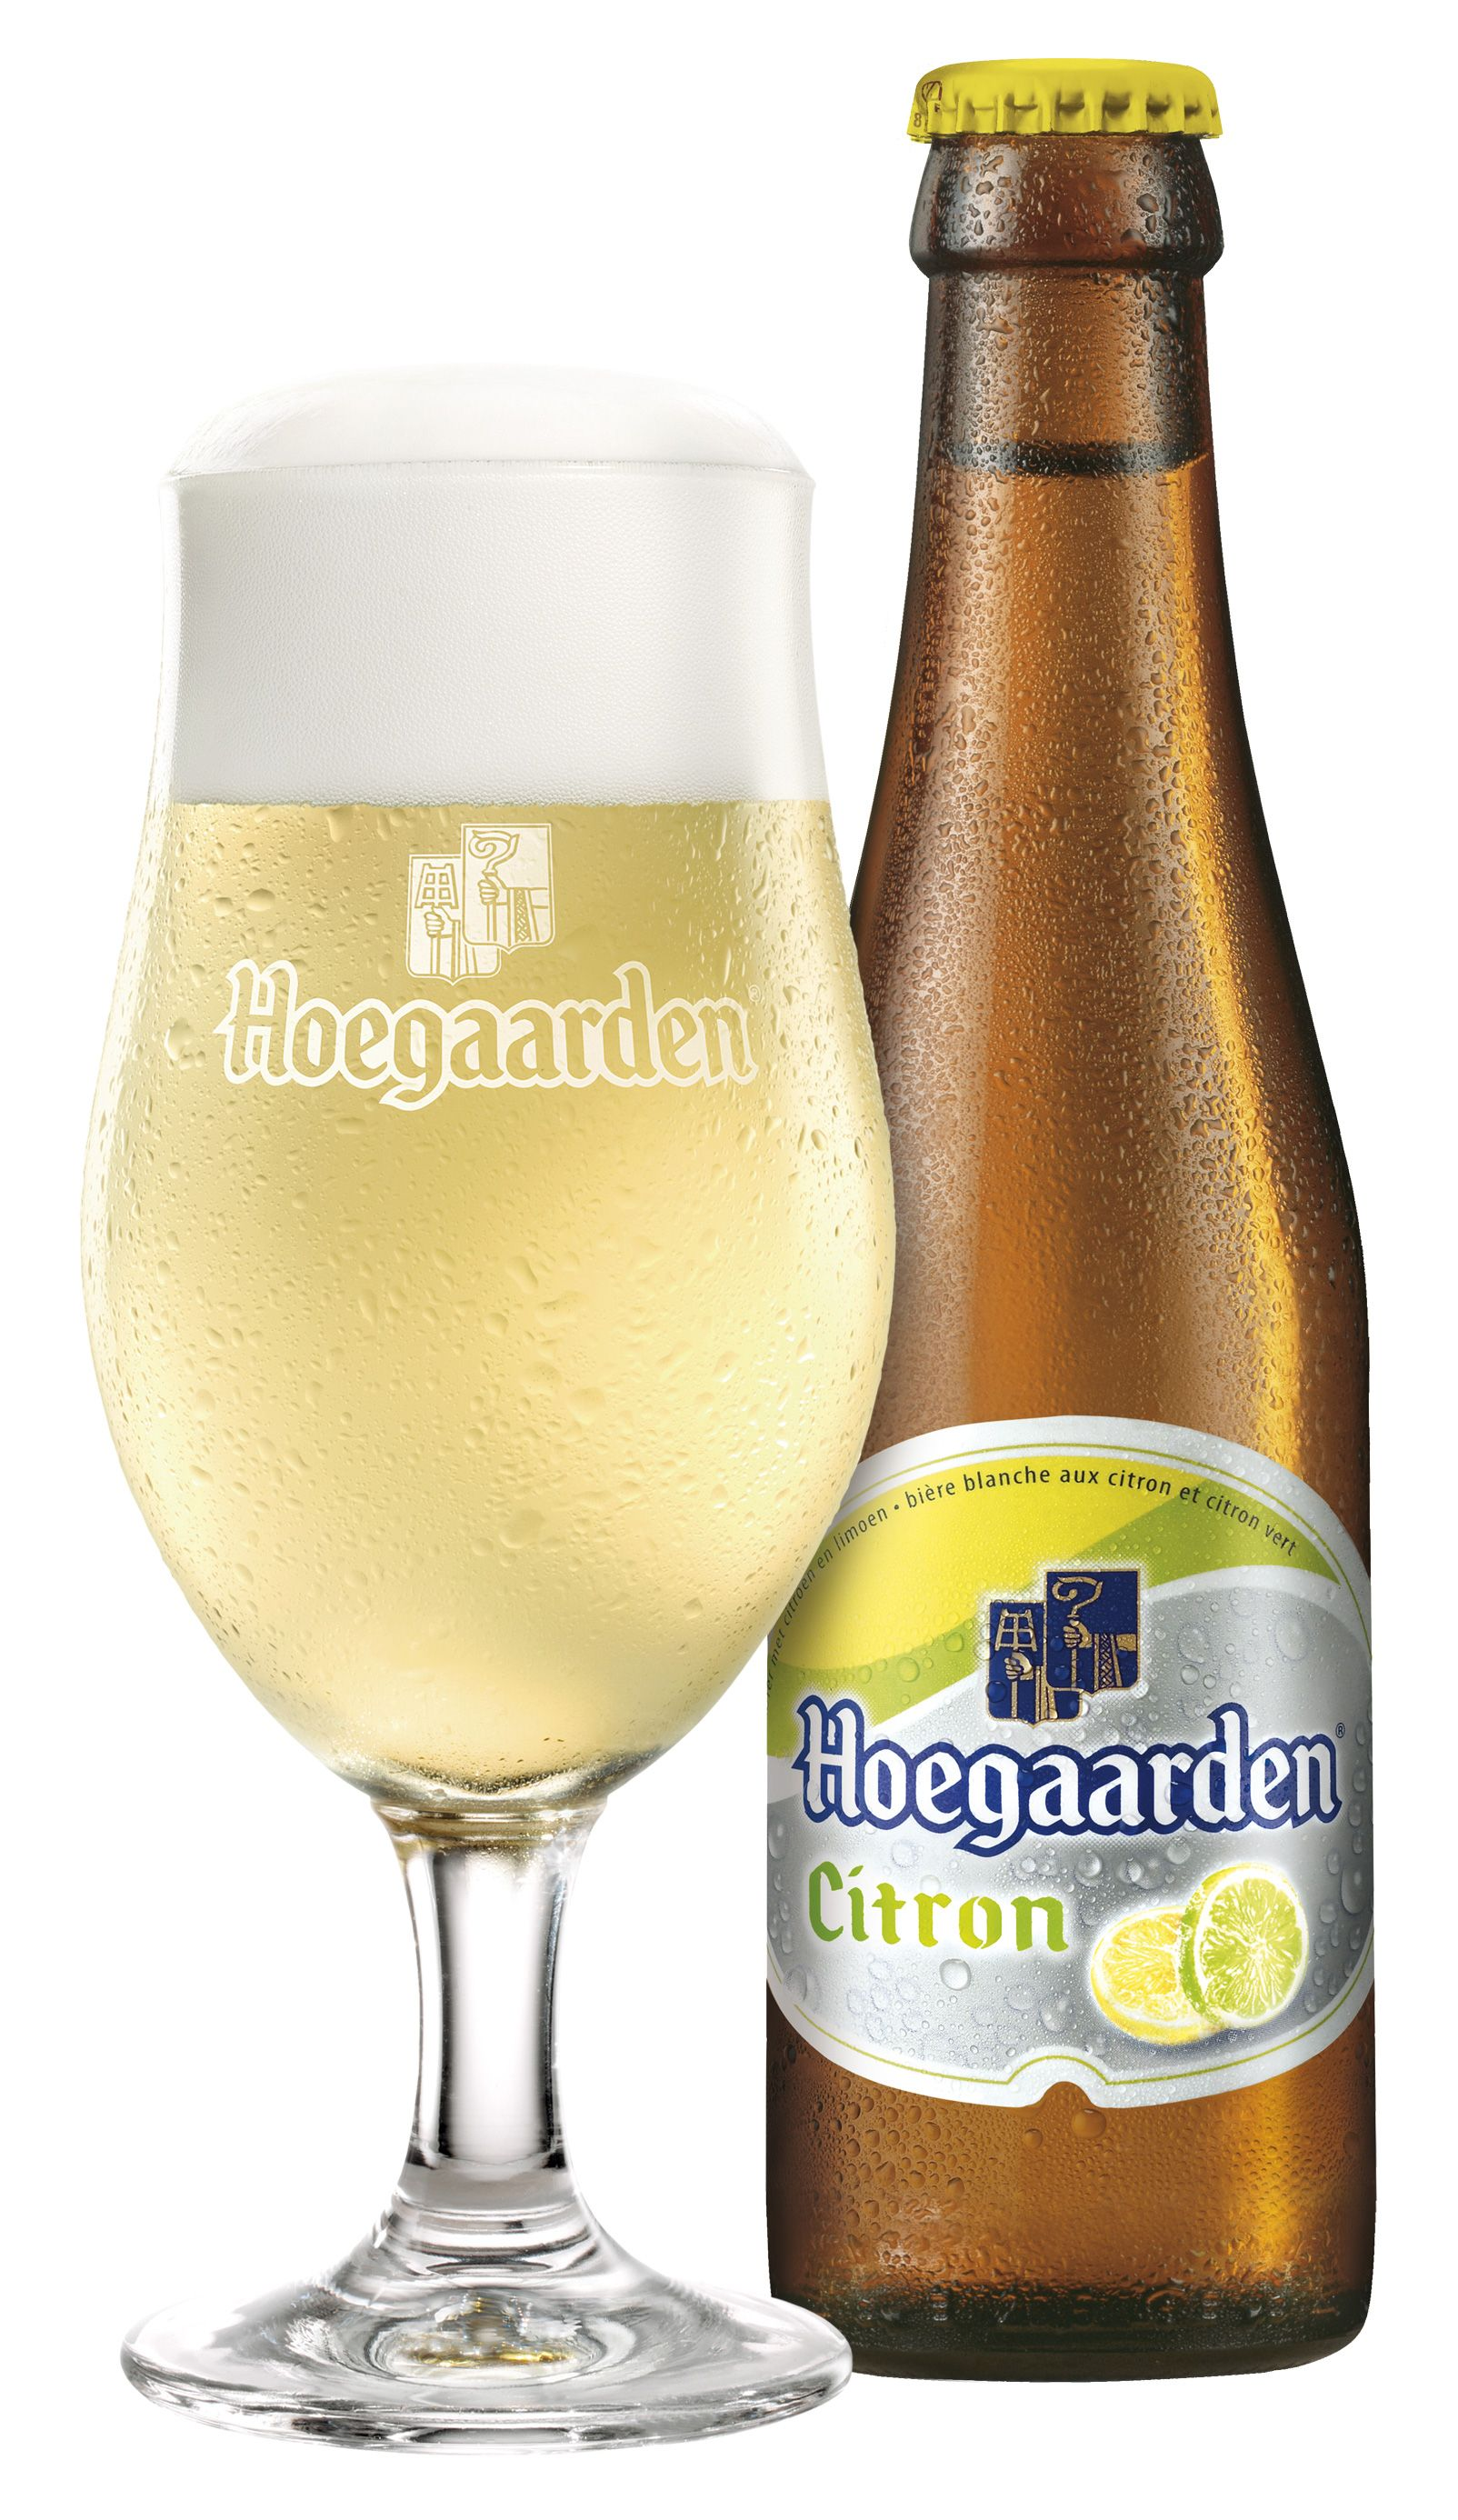 Bicchieri Hoegaarden Hoegaarden Citron Not Available In The U S Brother In Law